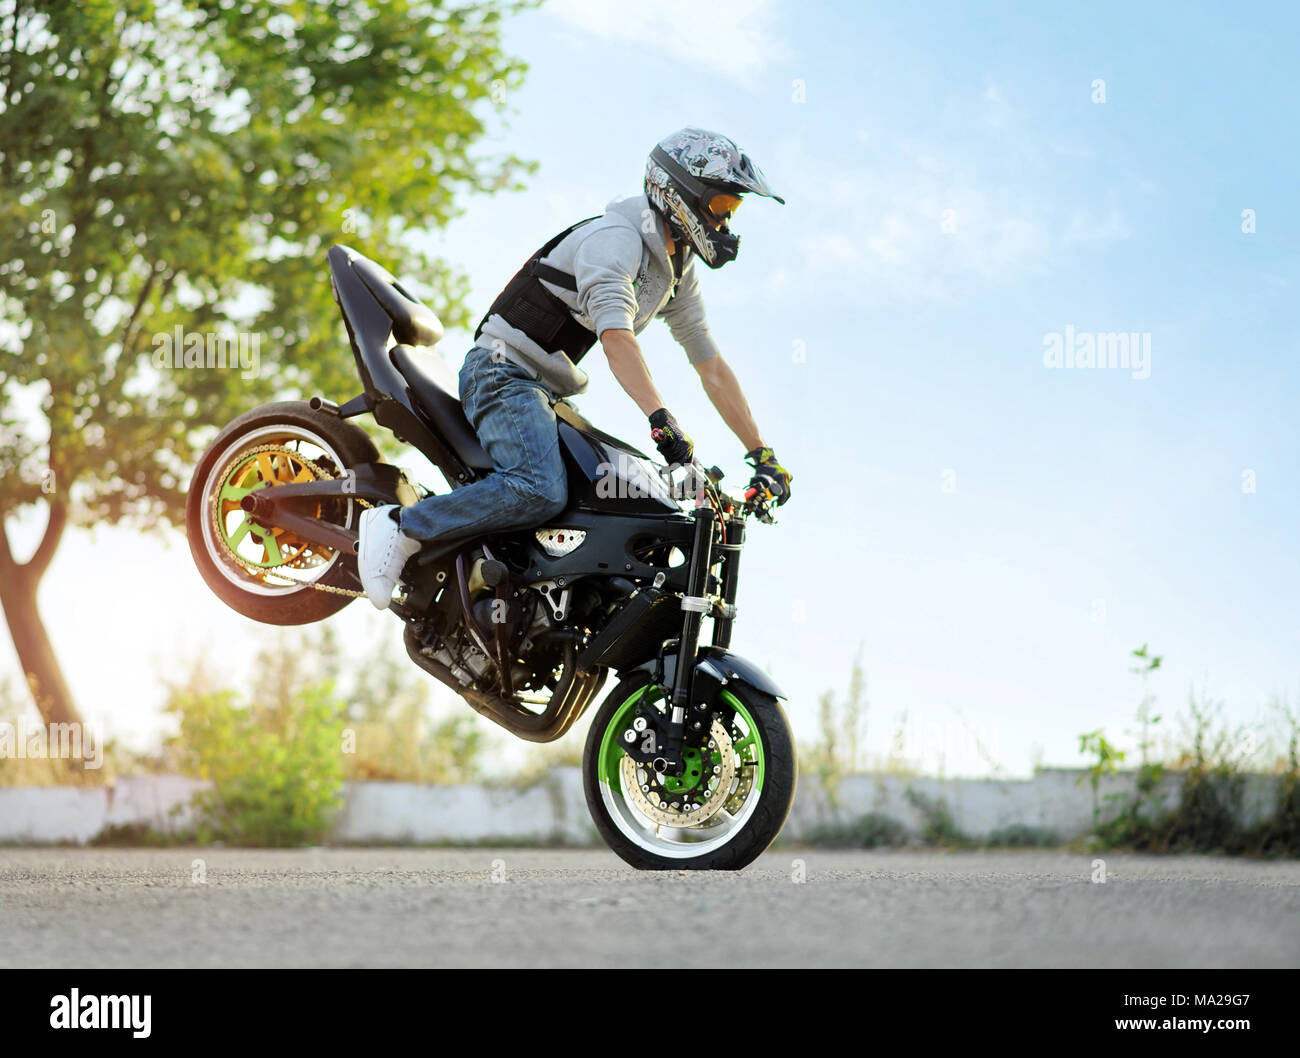 Ivano-Frankivsk, Ukraine - 28 August 2015 : Photo of biker is doing extreme trick on one cycle on blue summer sky and green trees background. Showing his talents and doing tricks wearing helmet. - Stock Image